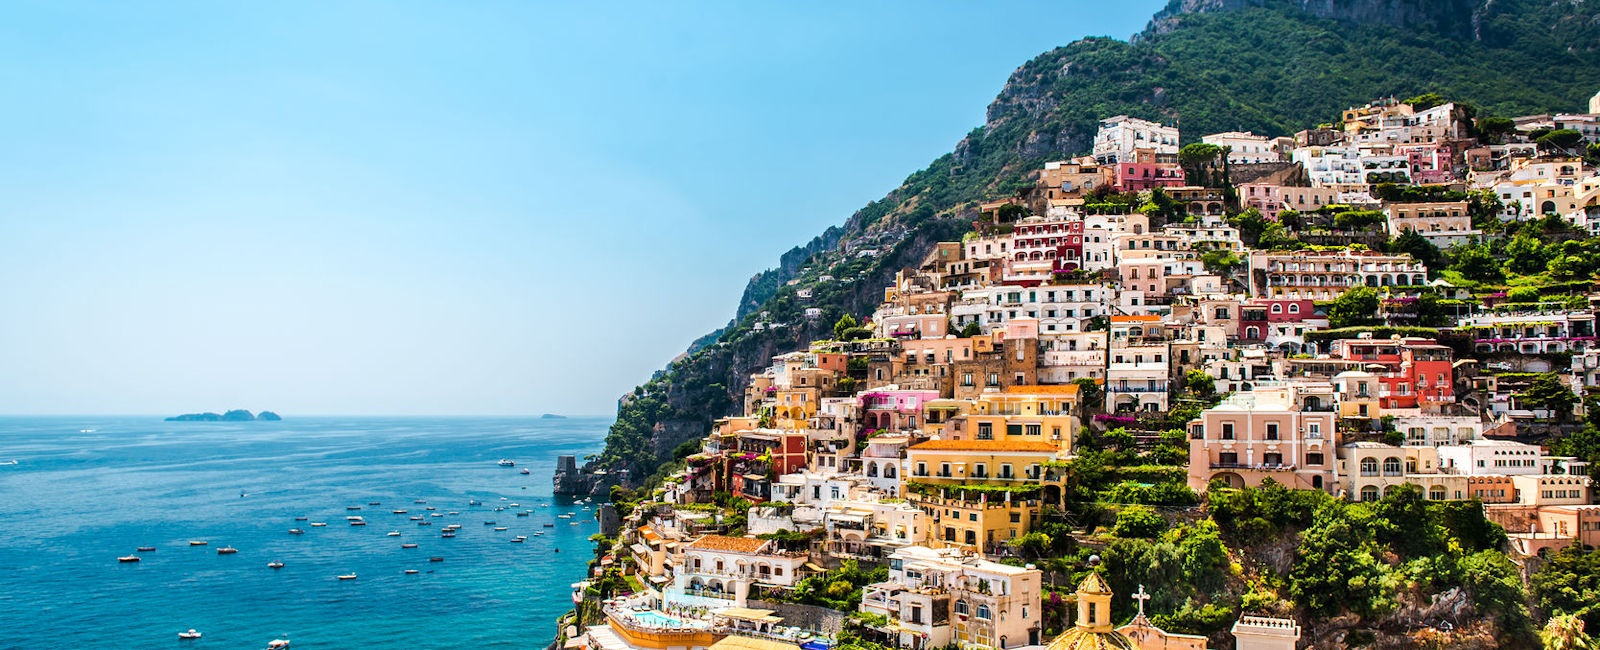 Luxury Positano Holidays